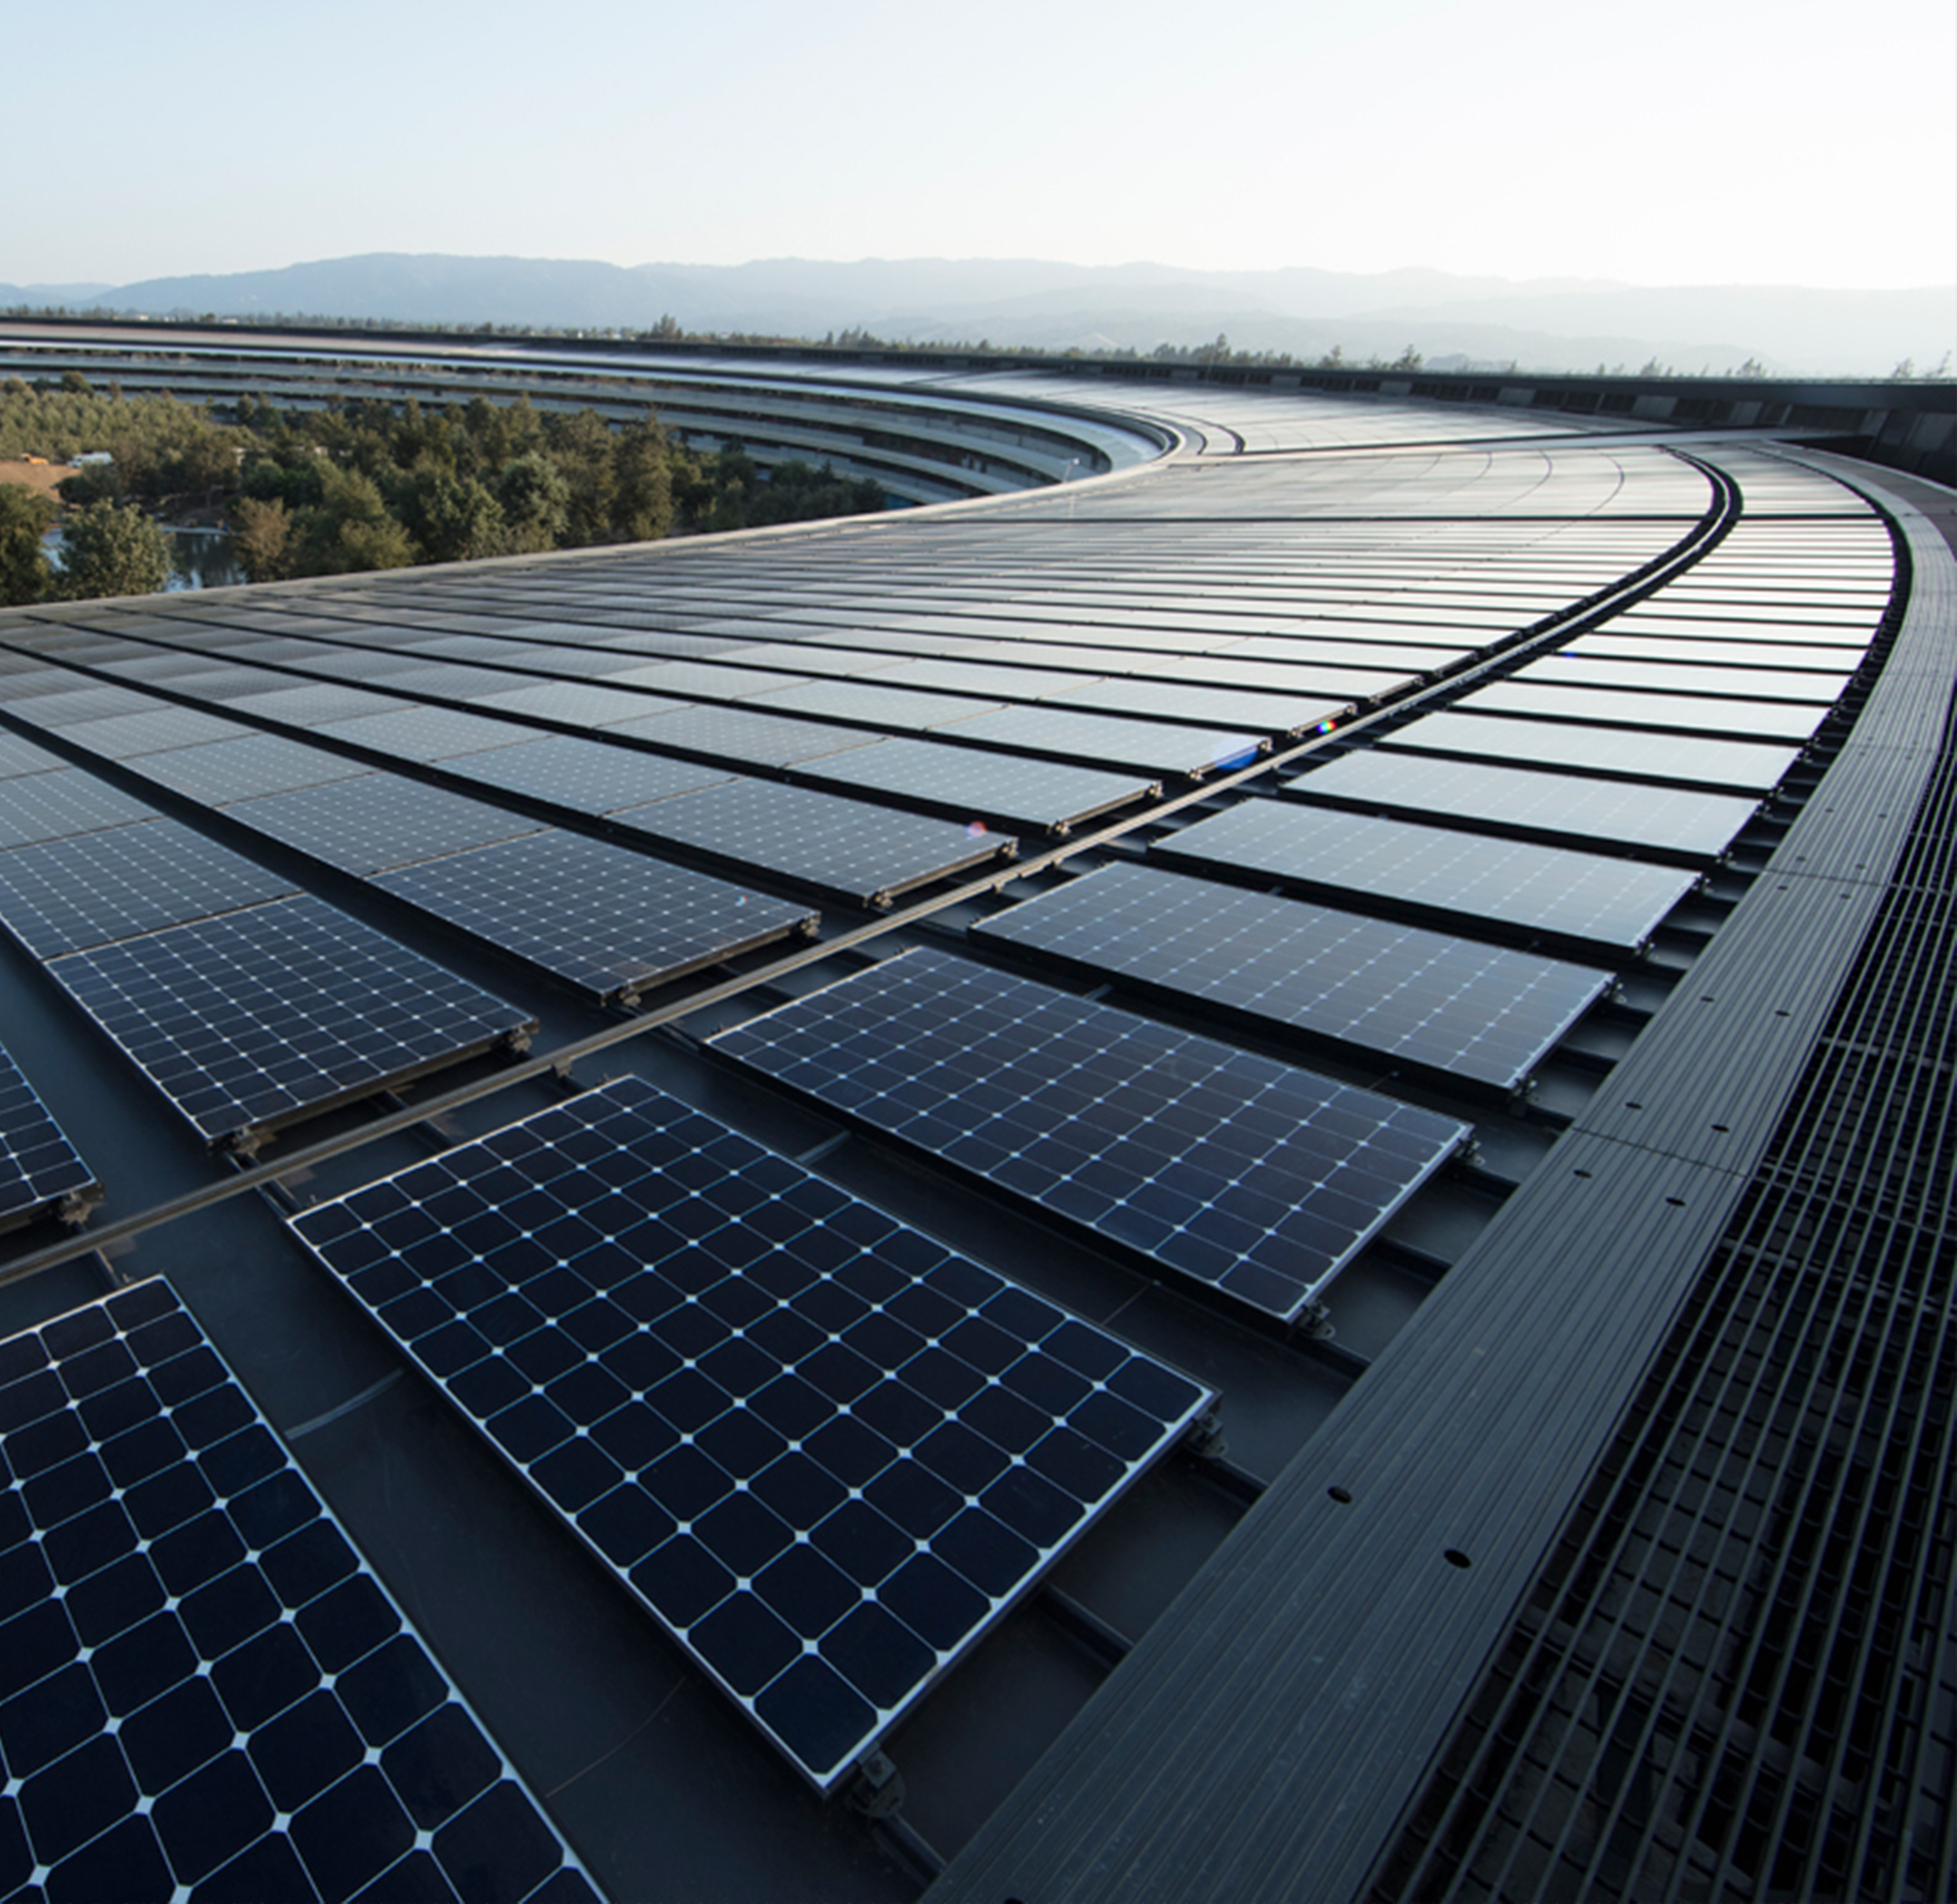 Solar arrays on the roof of Apple headquarters, Cupertino, California, United States